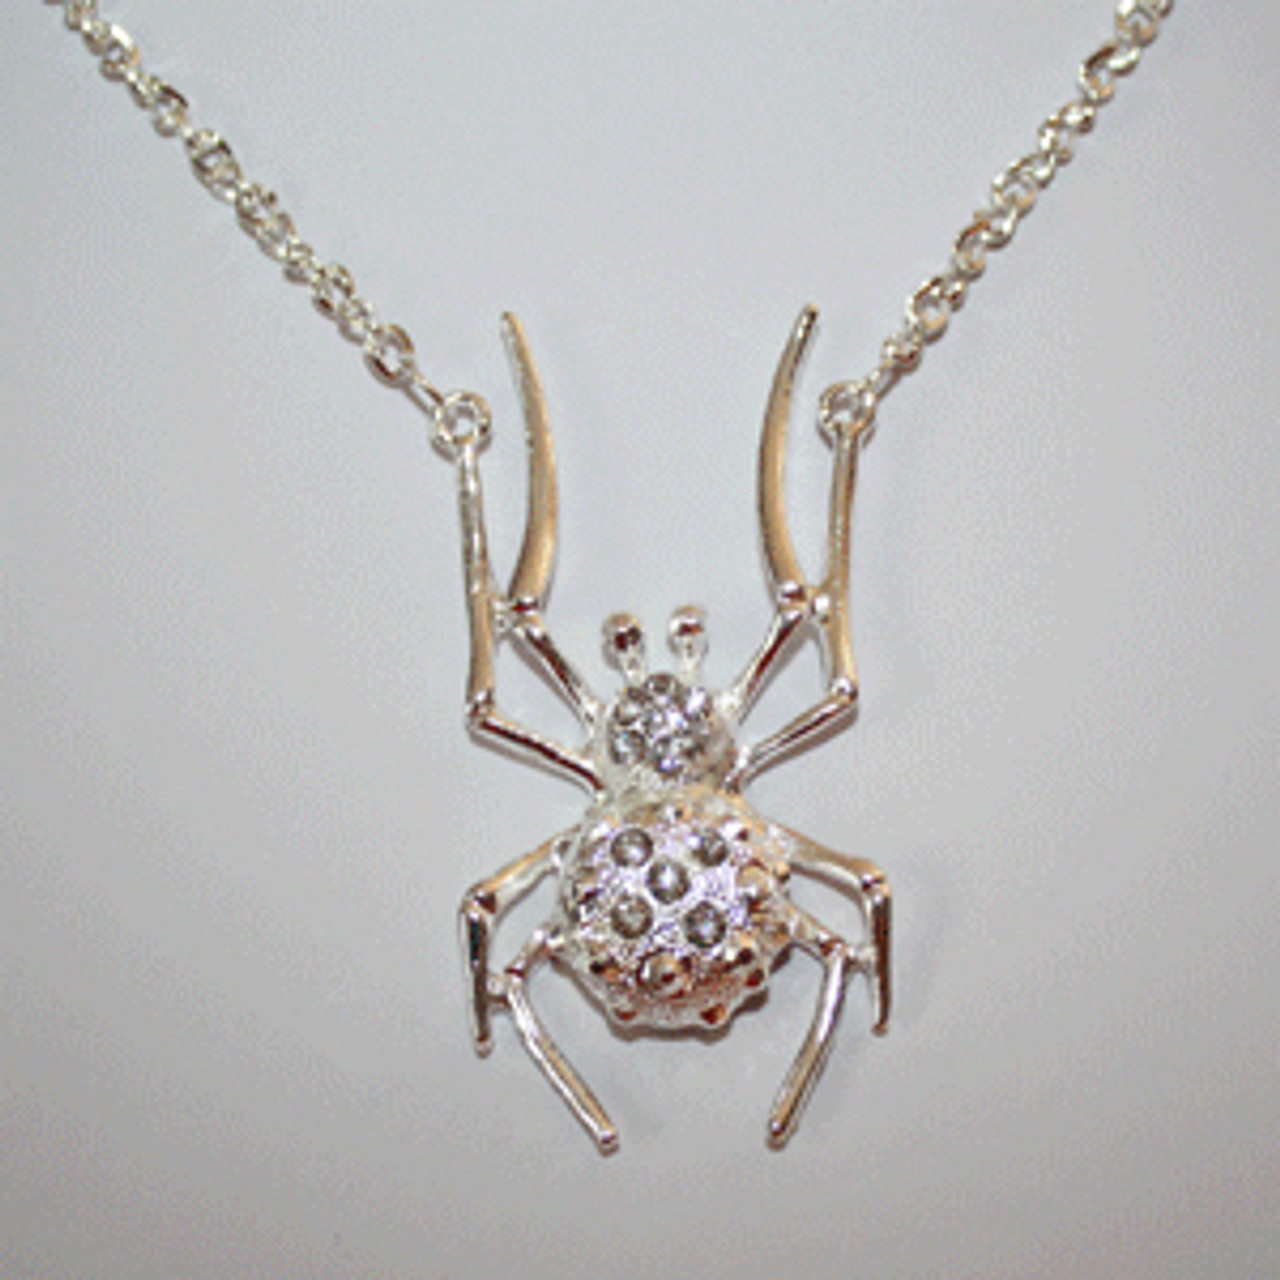 Cheap spider necklace